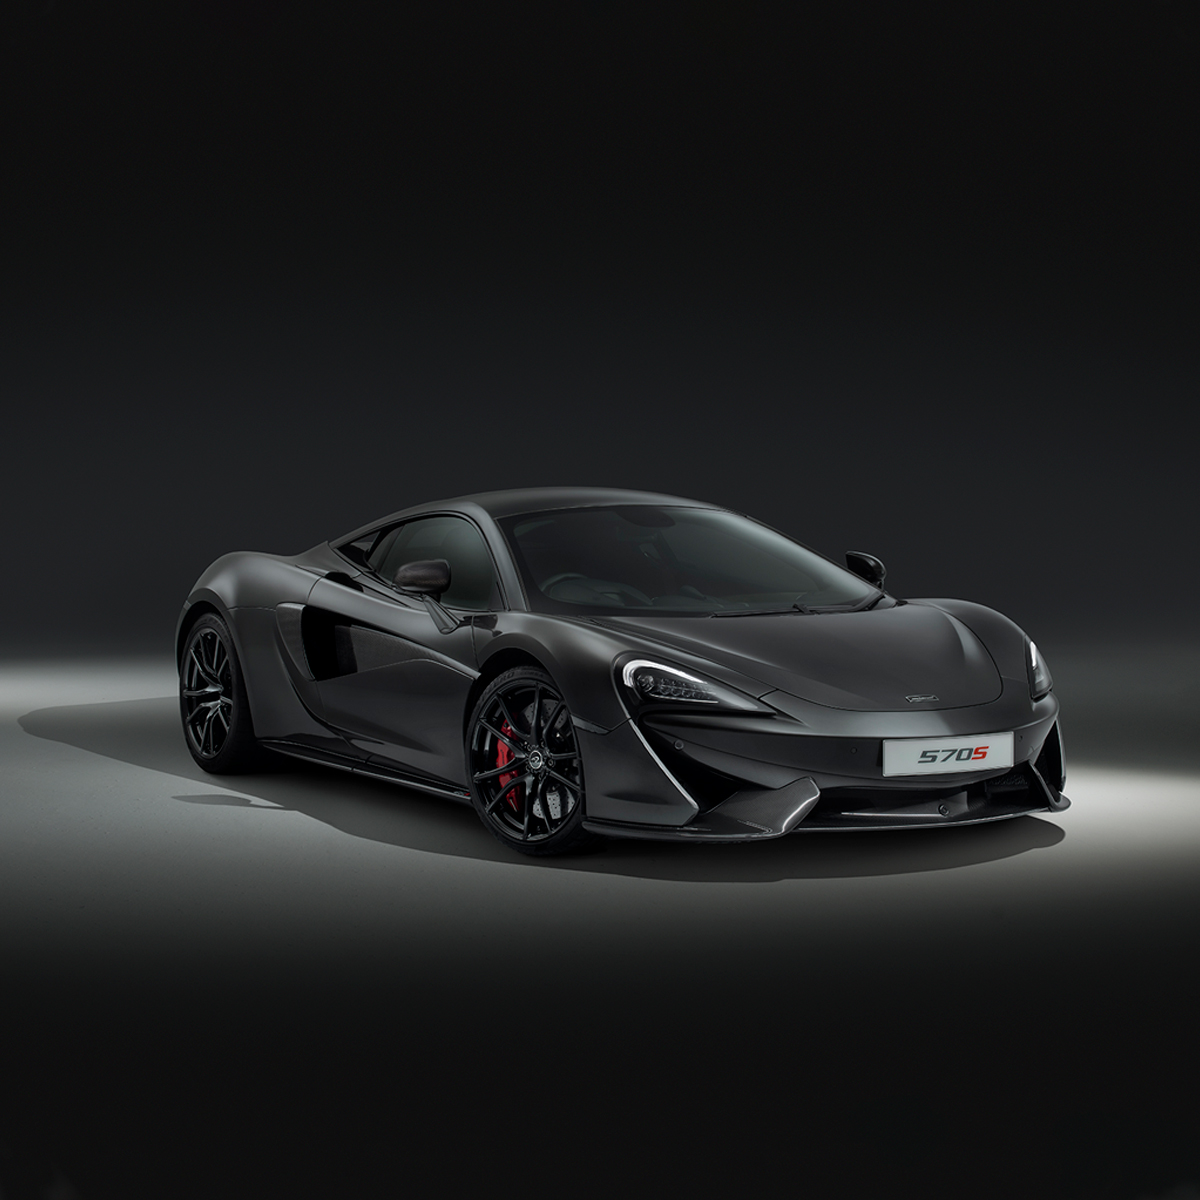 McLaren Genuine Accessories